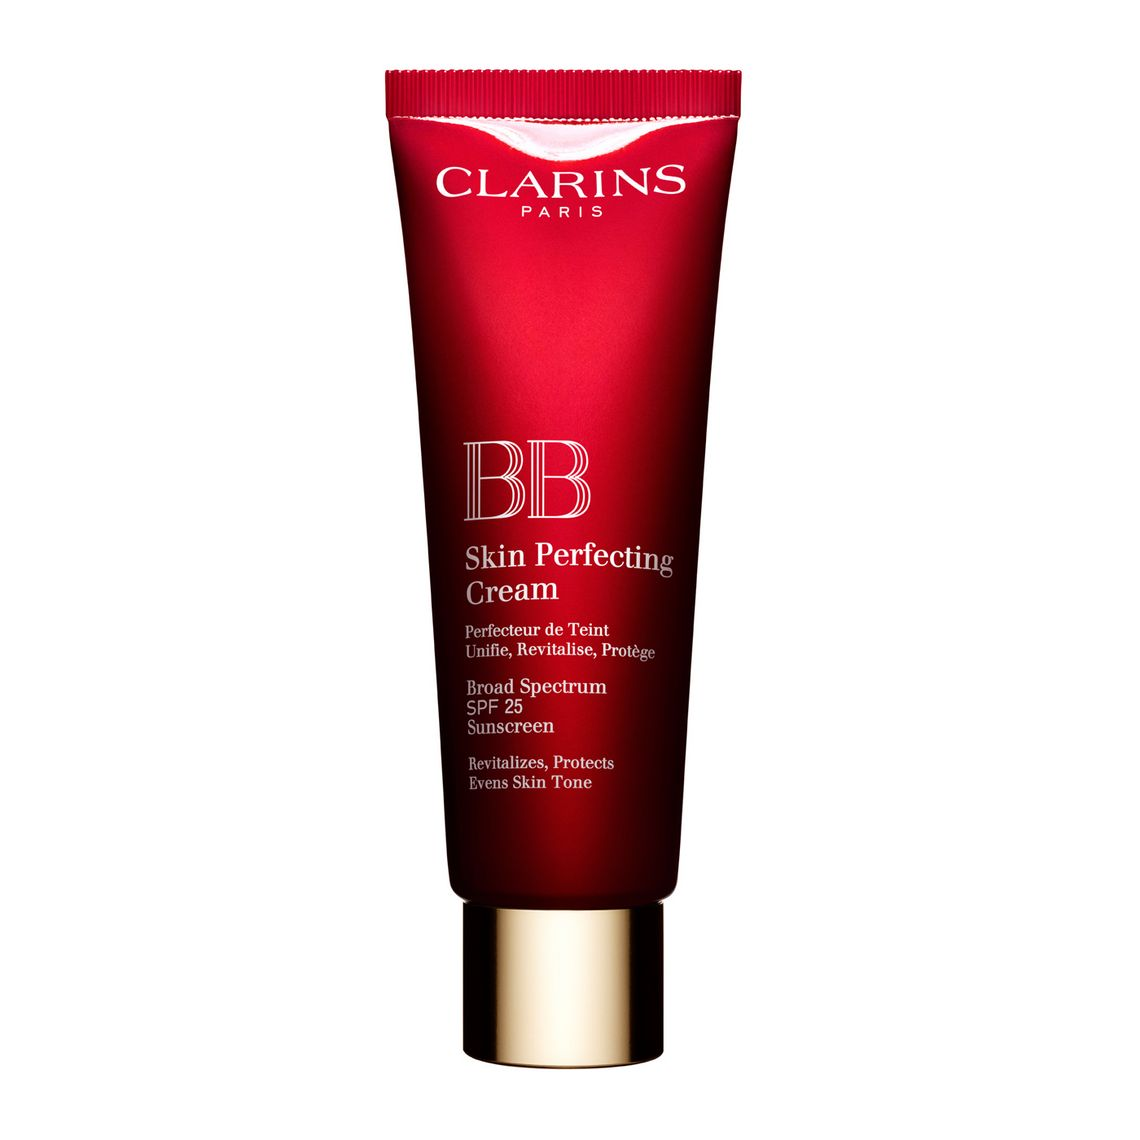 Clarins Skin Perfecting Cream SPF 25